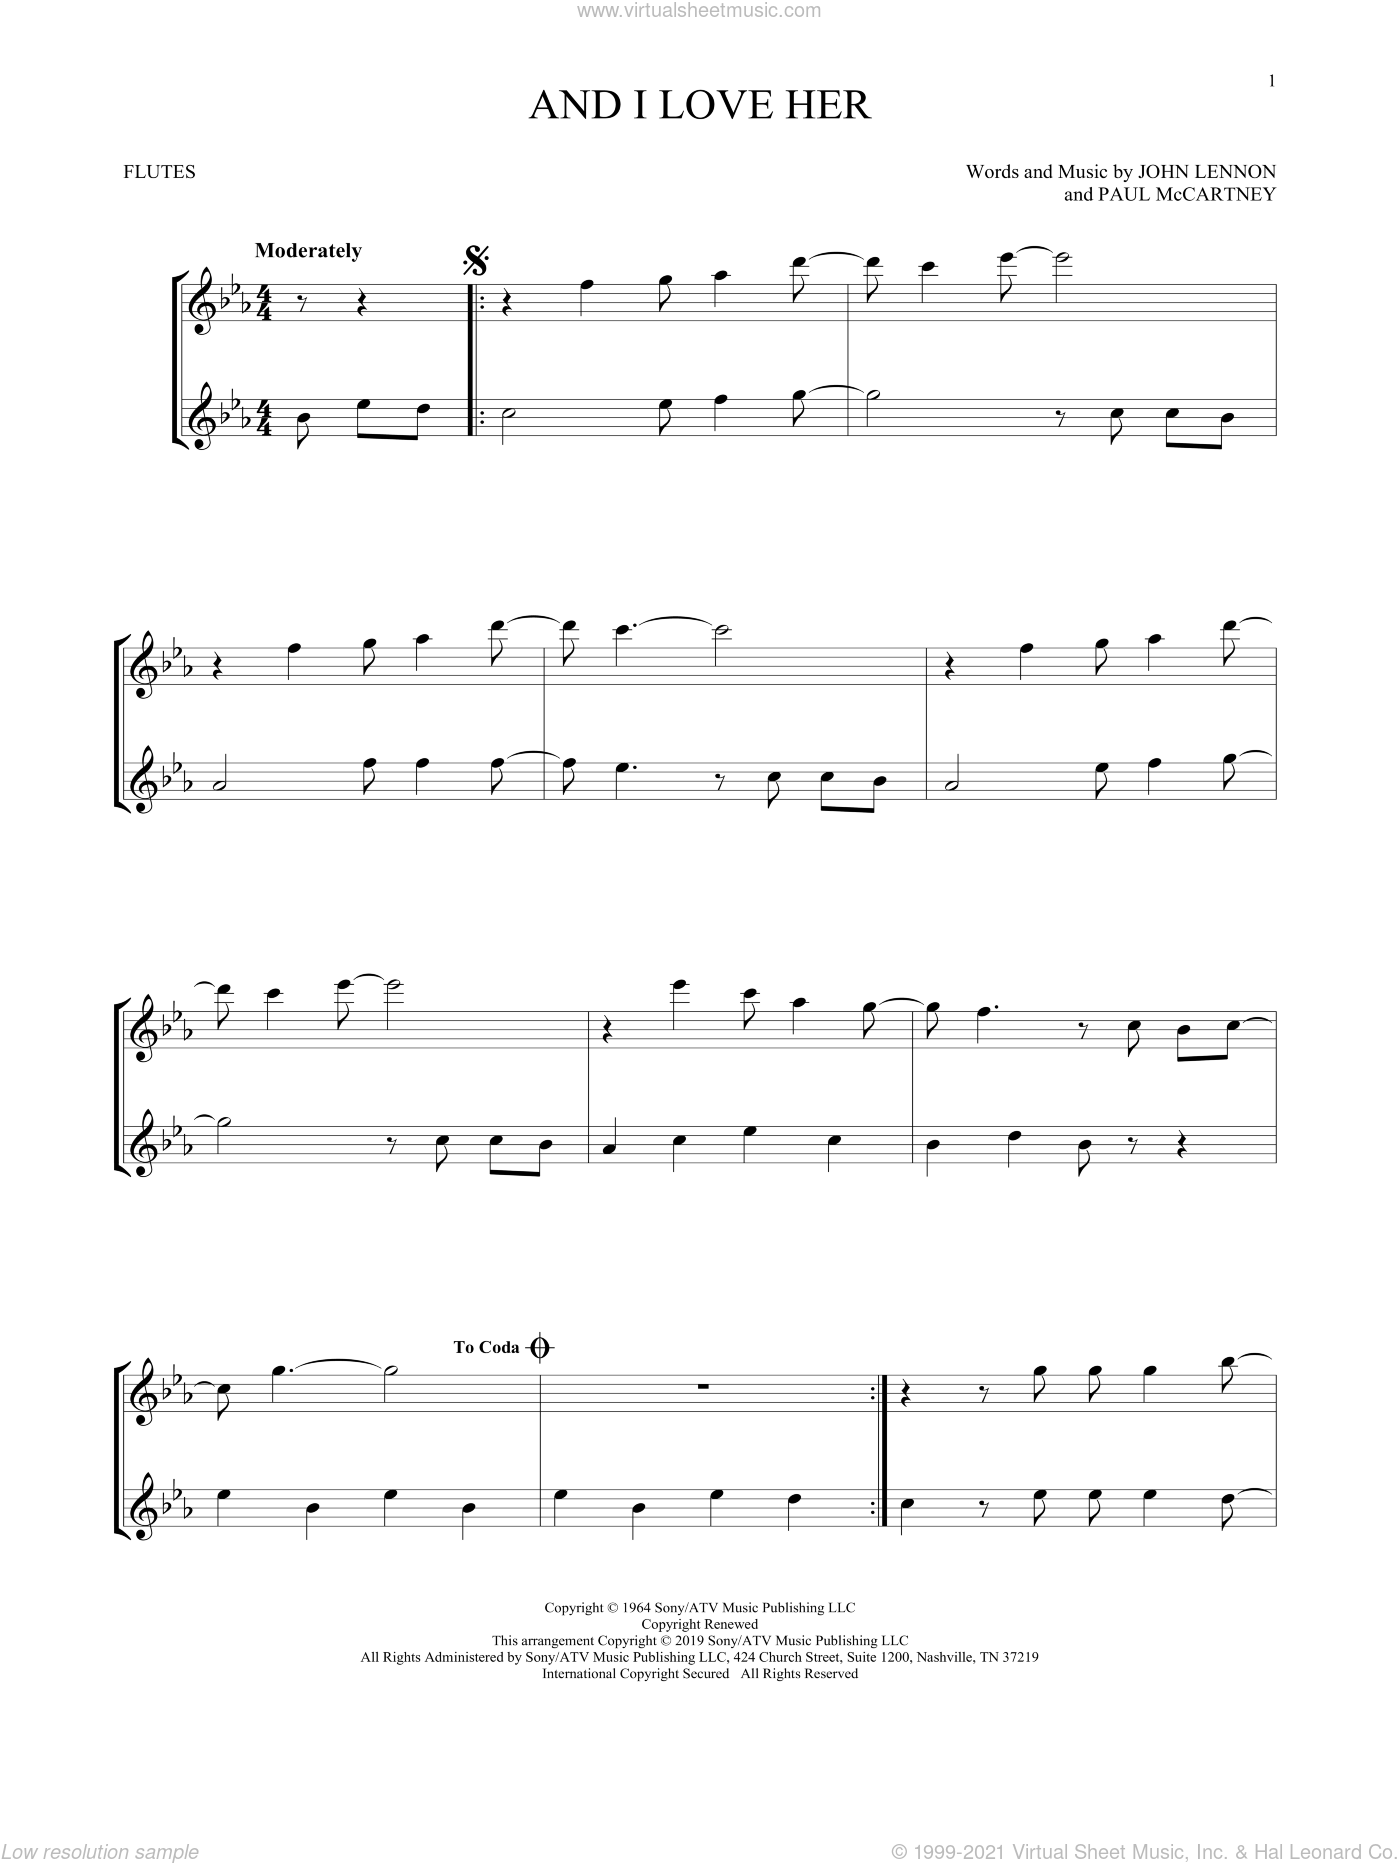 And I Love Her sheet music for two flutes (duets) by The Beatles, John Lennon and Paul McCartney, intermediate skill level